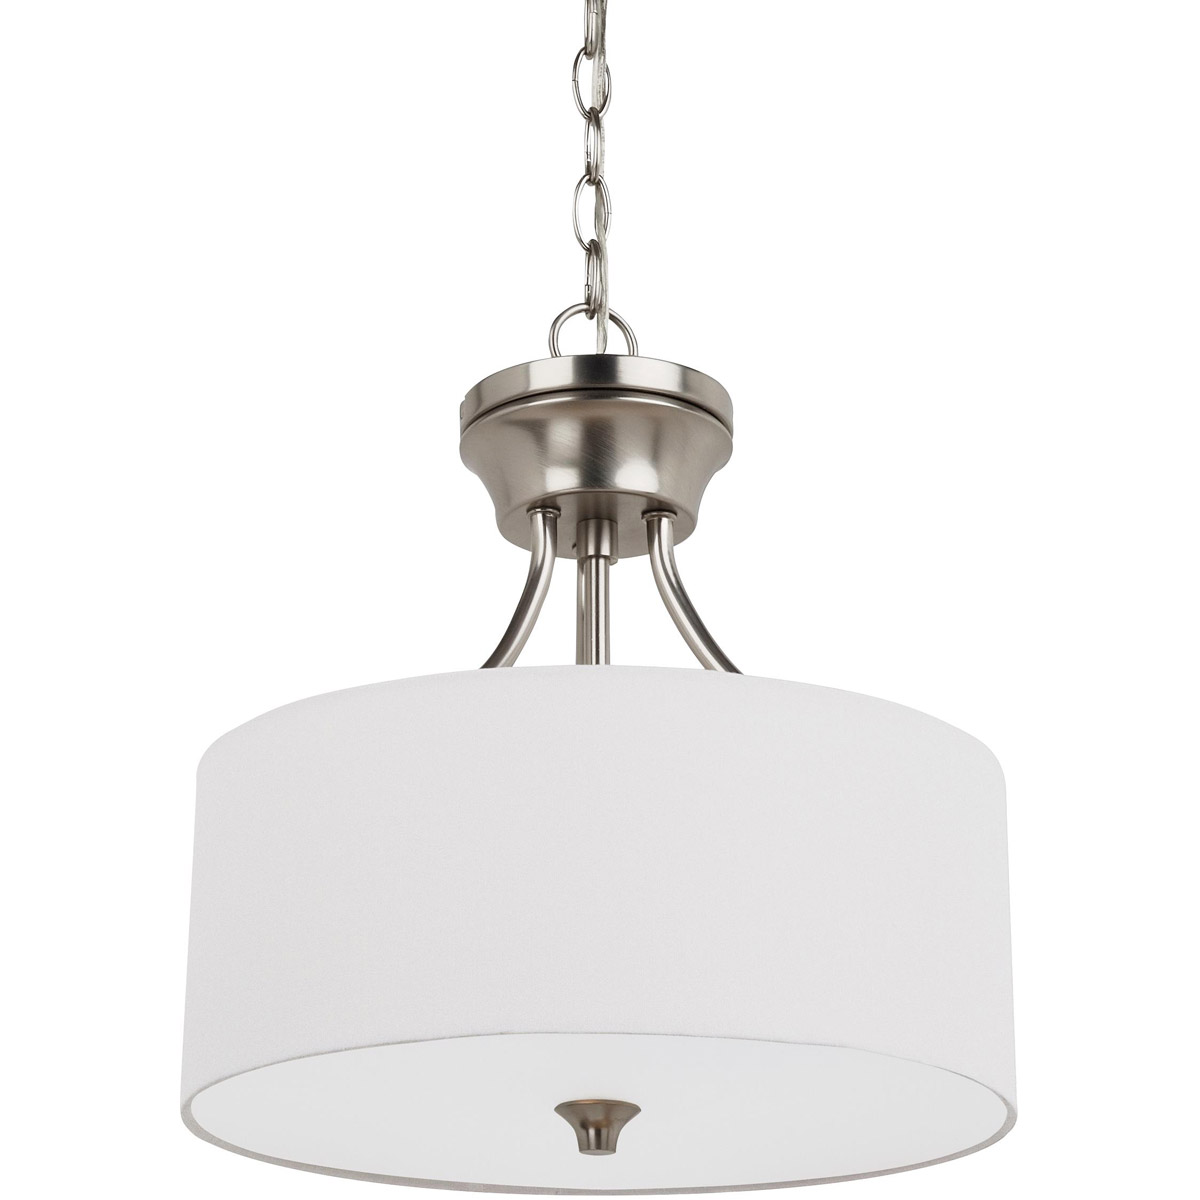 Sea Gull Lighting Stirling 2 Light Semi-Flush Mount in Brushed Nickel 77952-962